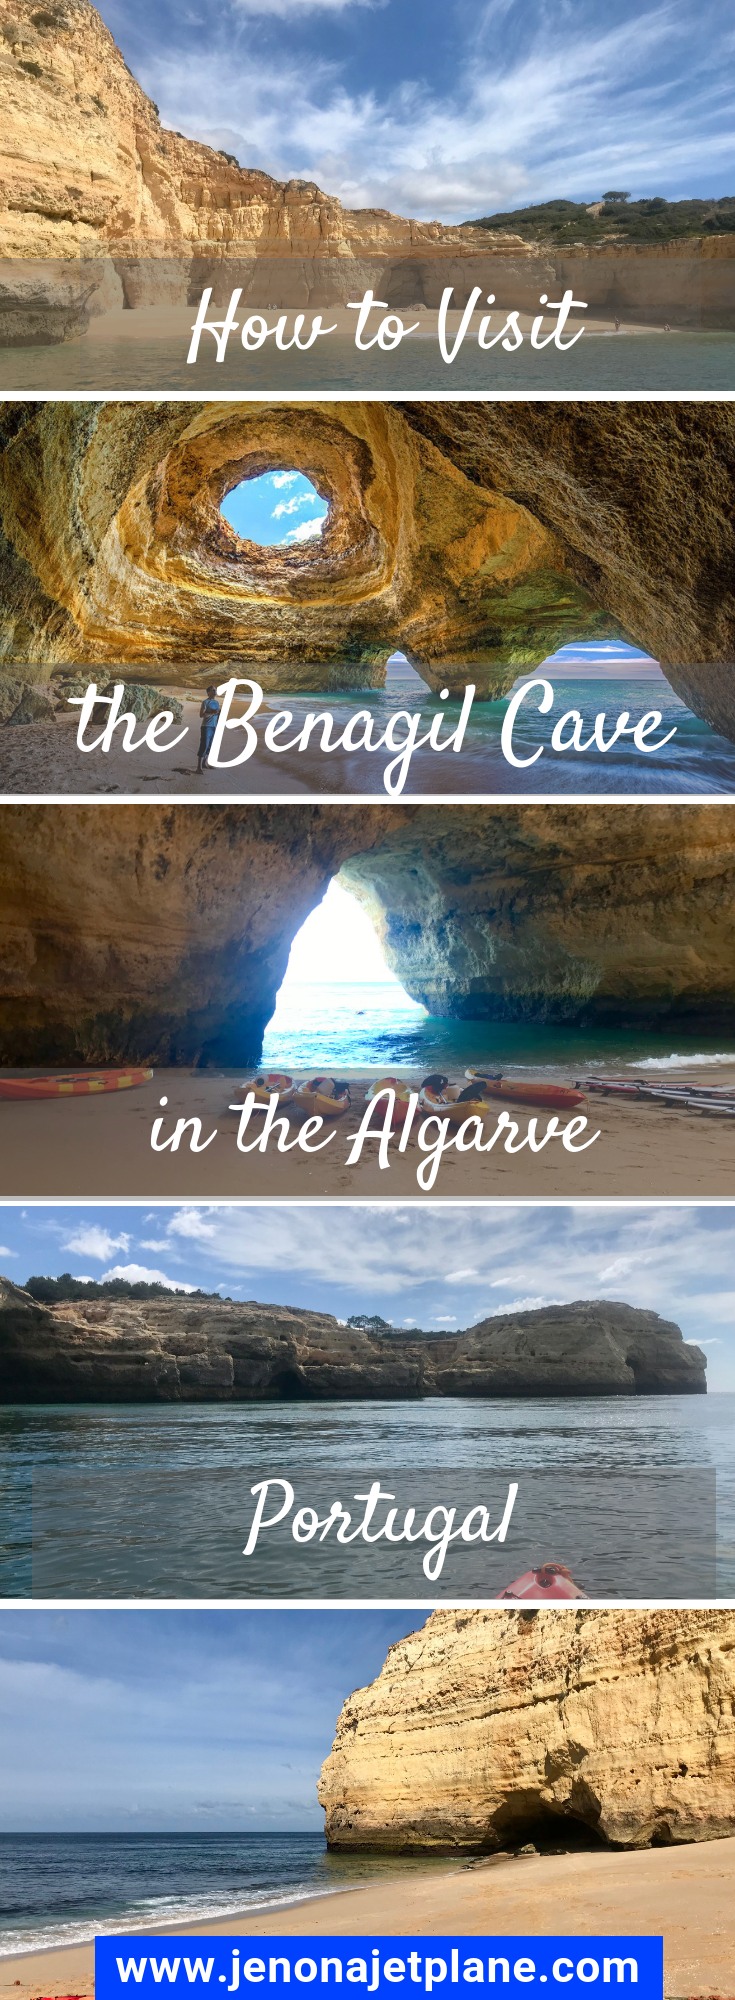 There's only 4 ways to visit the Benagil Sea Cave in the Algarve, Portugal. Find out which method of access is best for you in this post. Save to your travel board for future reference! #portugaltravel #benagil #benagilcavekayak #portugal